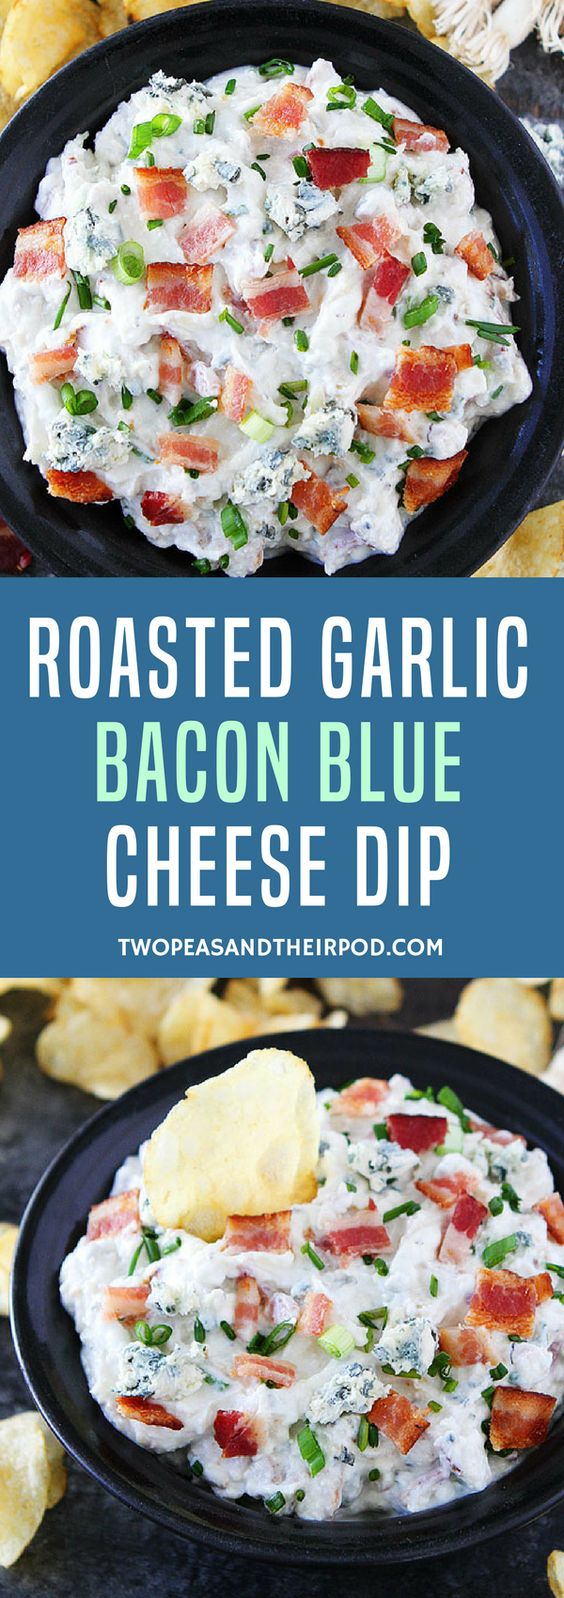 Roasted Garlic Bacon Blue Cheese Dip